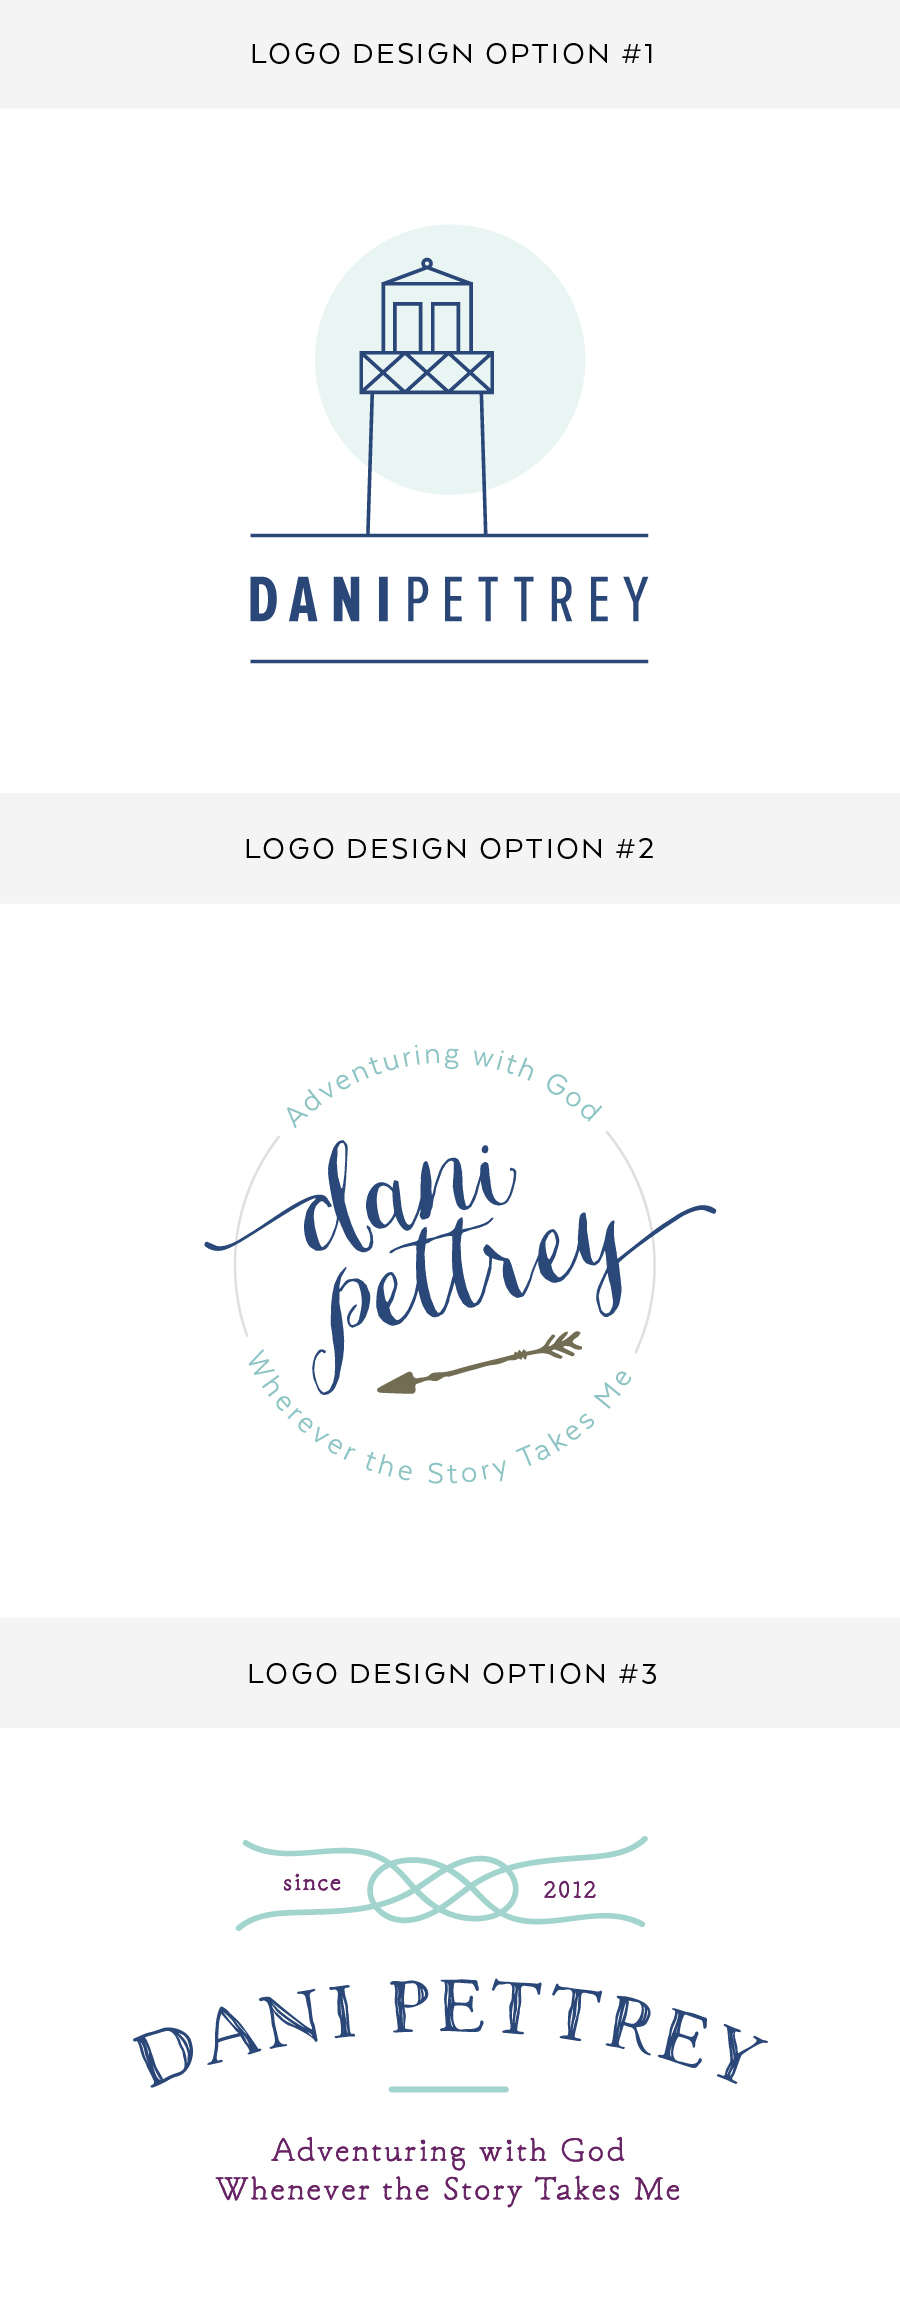 Author Dani Pettrey Brand Logo Design and   Branding - Feminine Logo Designs #Coastal #Beach #Ocean #Design #Modern Script Font Logo #arrows